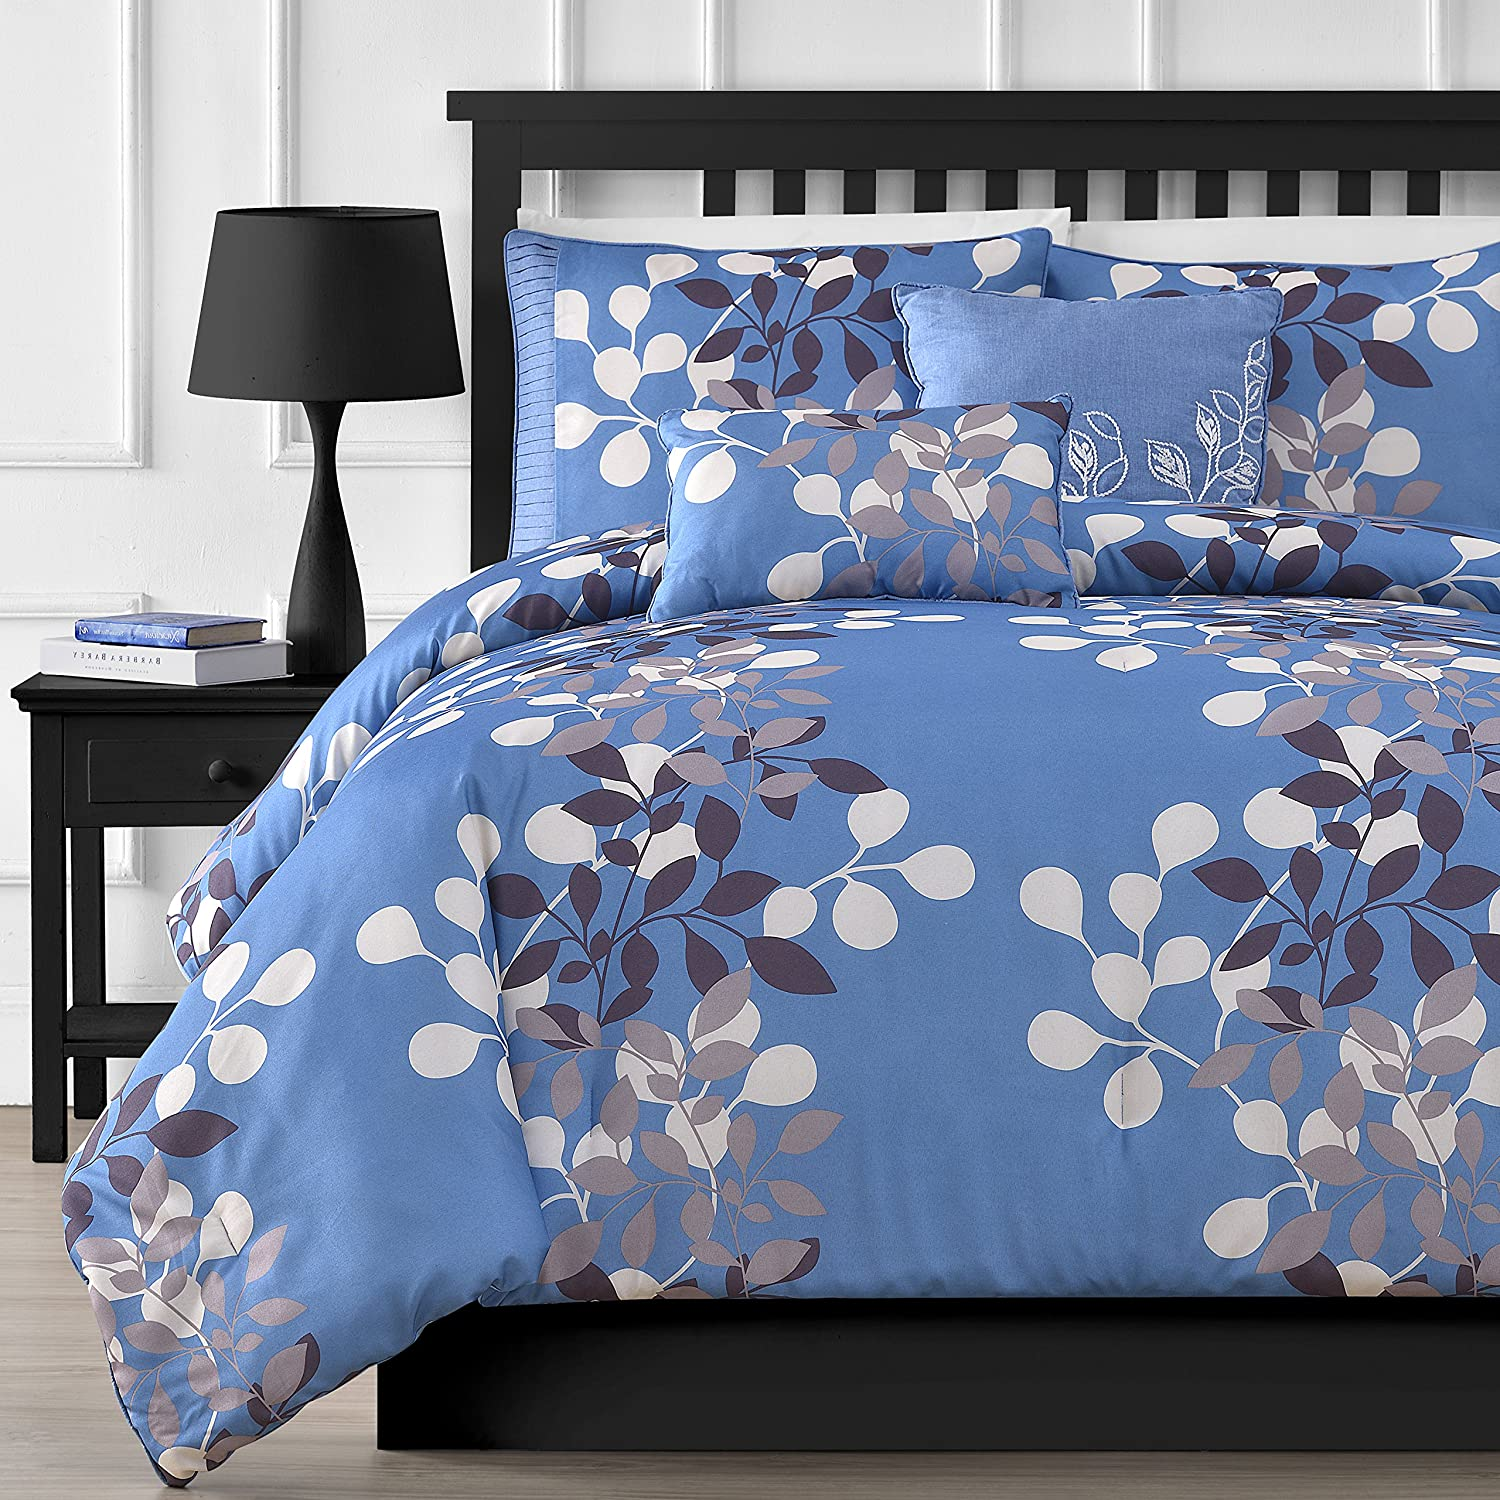 Comfy Bedding Flower Jacquard Microfiber 5-Piece Comforter Set